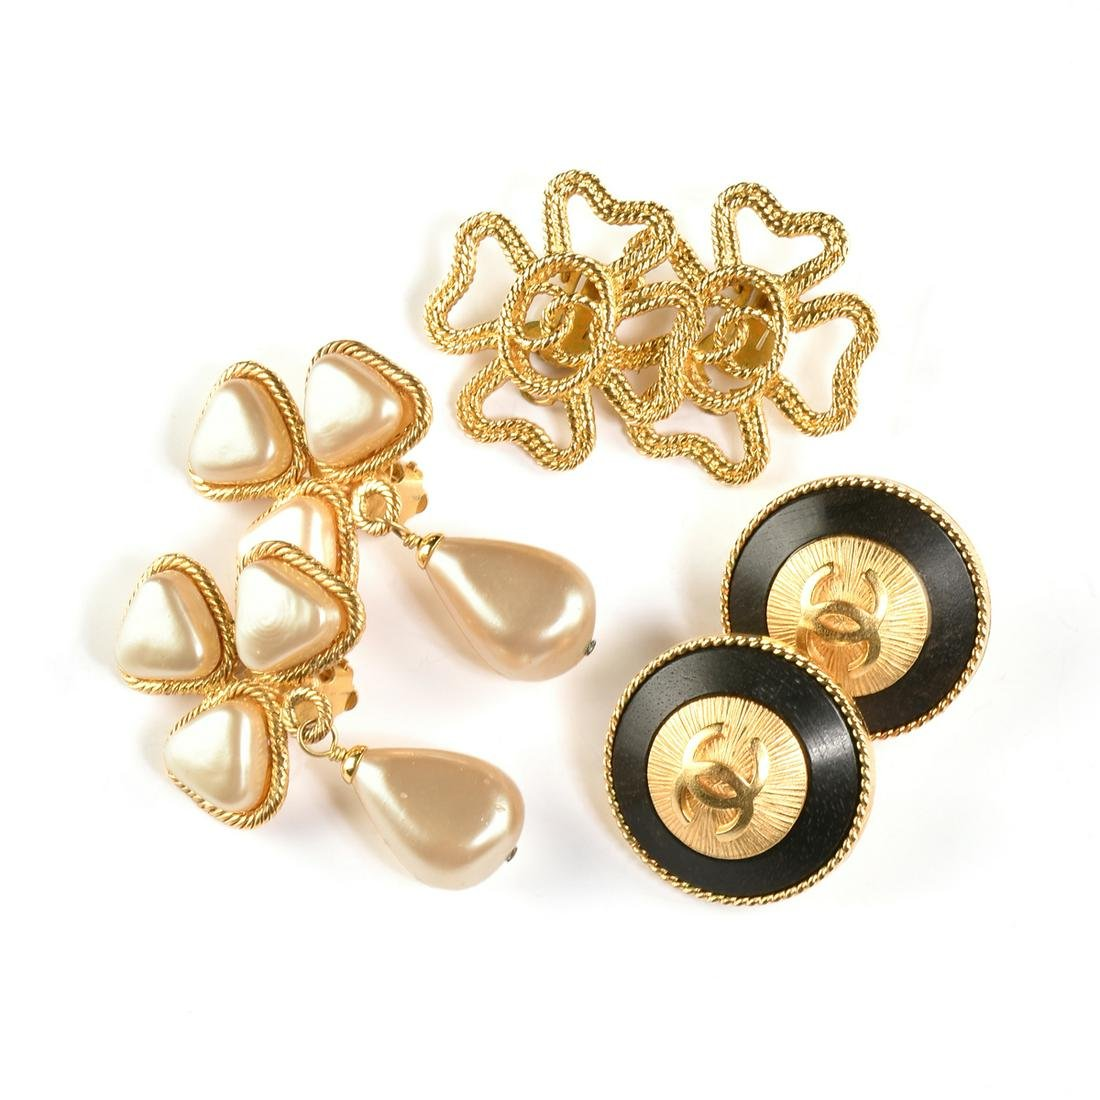 A GROUP OF THREE PAIRS OF CHANEL VINTAGE CLIP ON